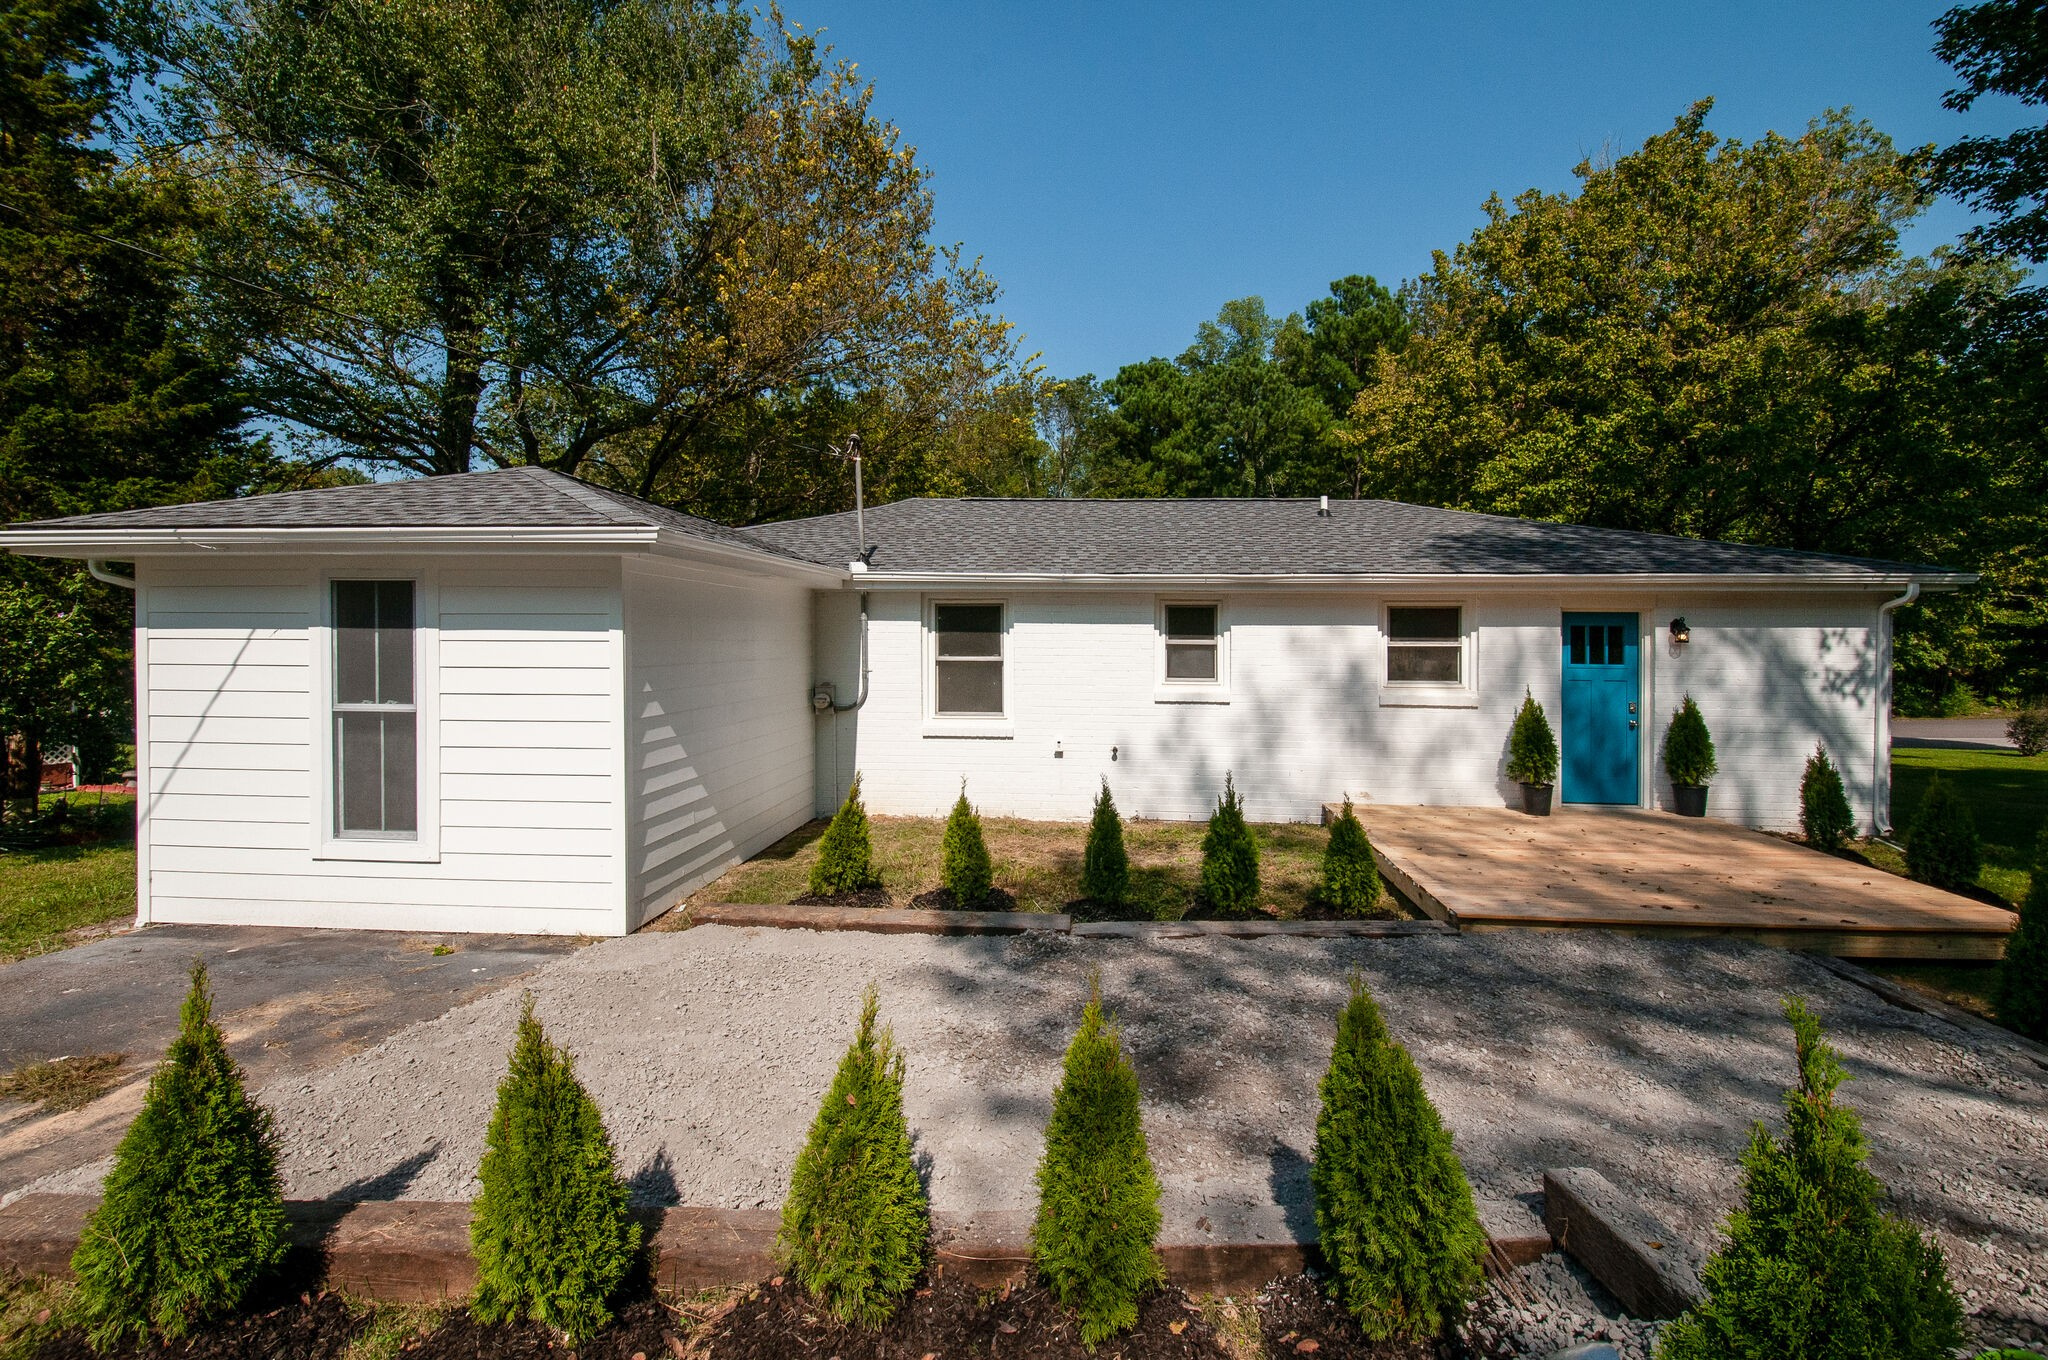 Totally Renovated 3 BR/2 BA Home On 1/2 Acre Lot!  2048 Virginia Ave, Goodlettsville, TN.  37072